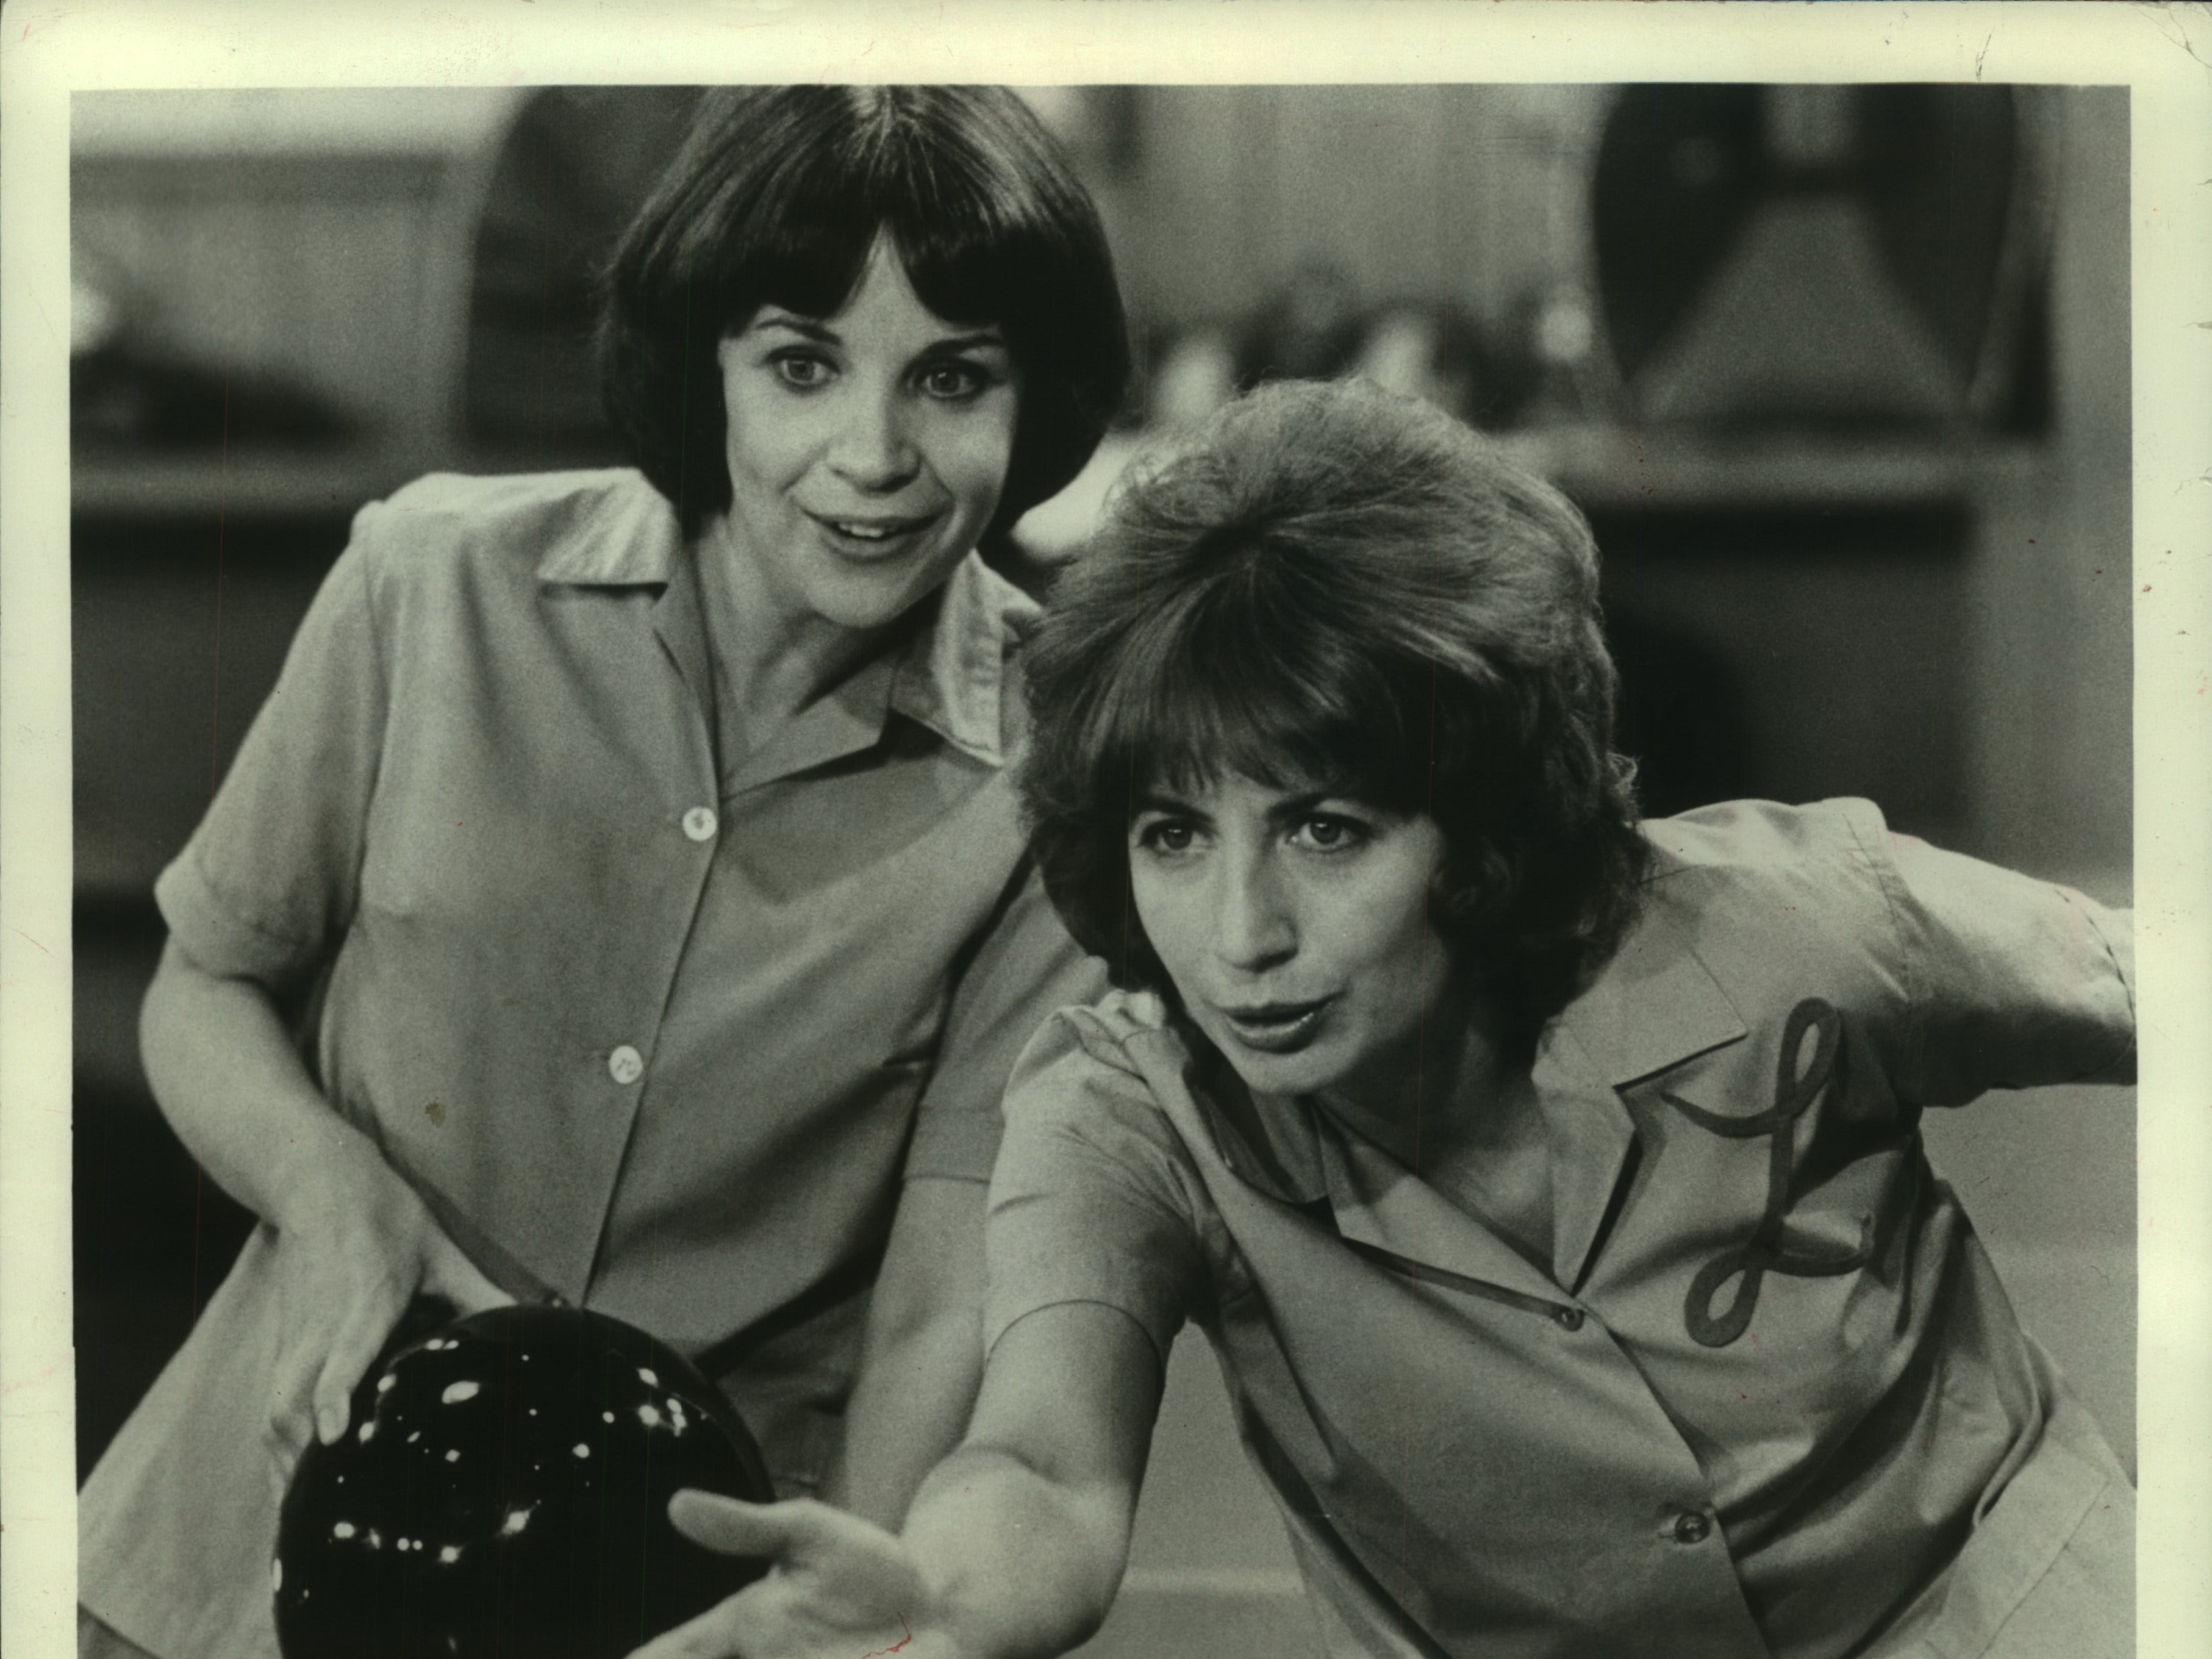 """""""Laverne & Shirley,"""" starring Cindy Williams and Penny Marshall, was set in Milwaukee. The show and """"Happy Days' were a main source of the impressions that people nationally have of Milwaukee."""